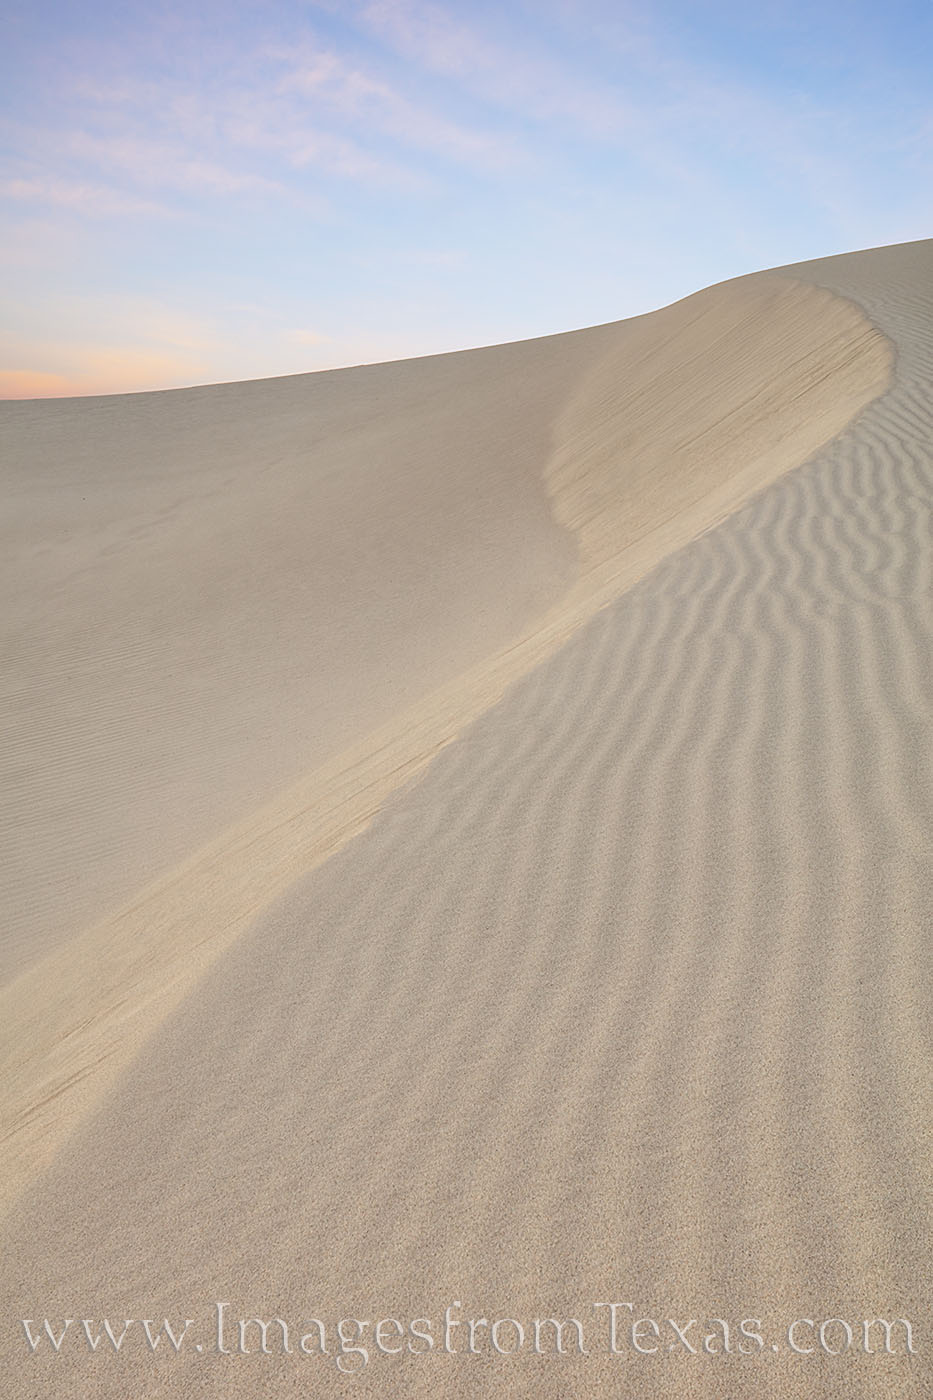 sandhills, sand dunes, sand, sand shapes, dunes, monahans, morning, blue sky, west texas, texas state parks, photo